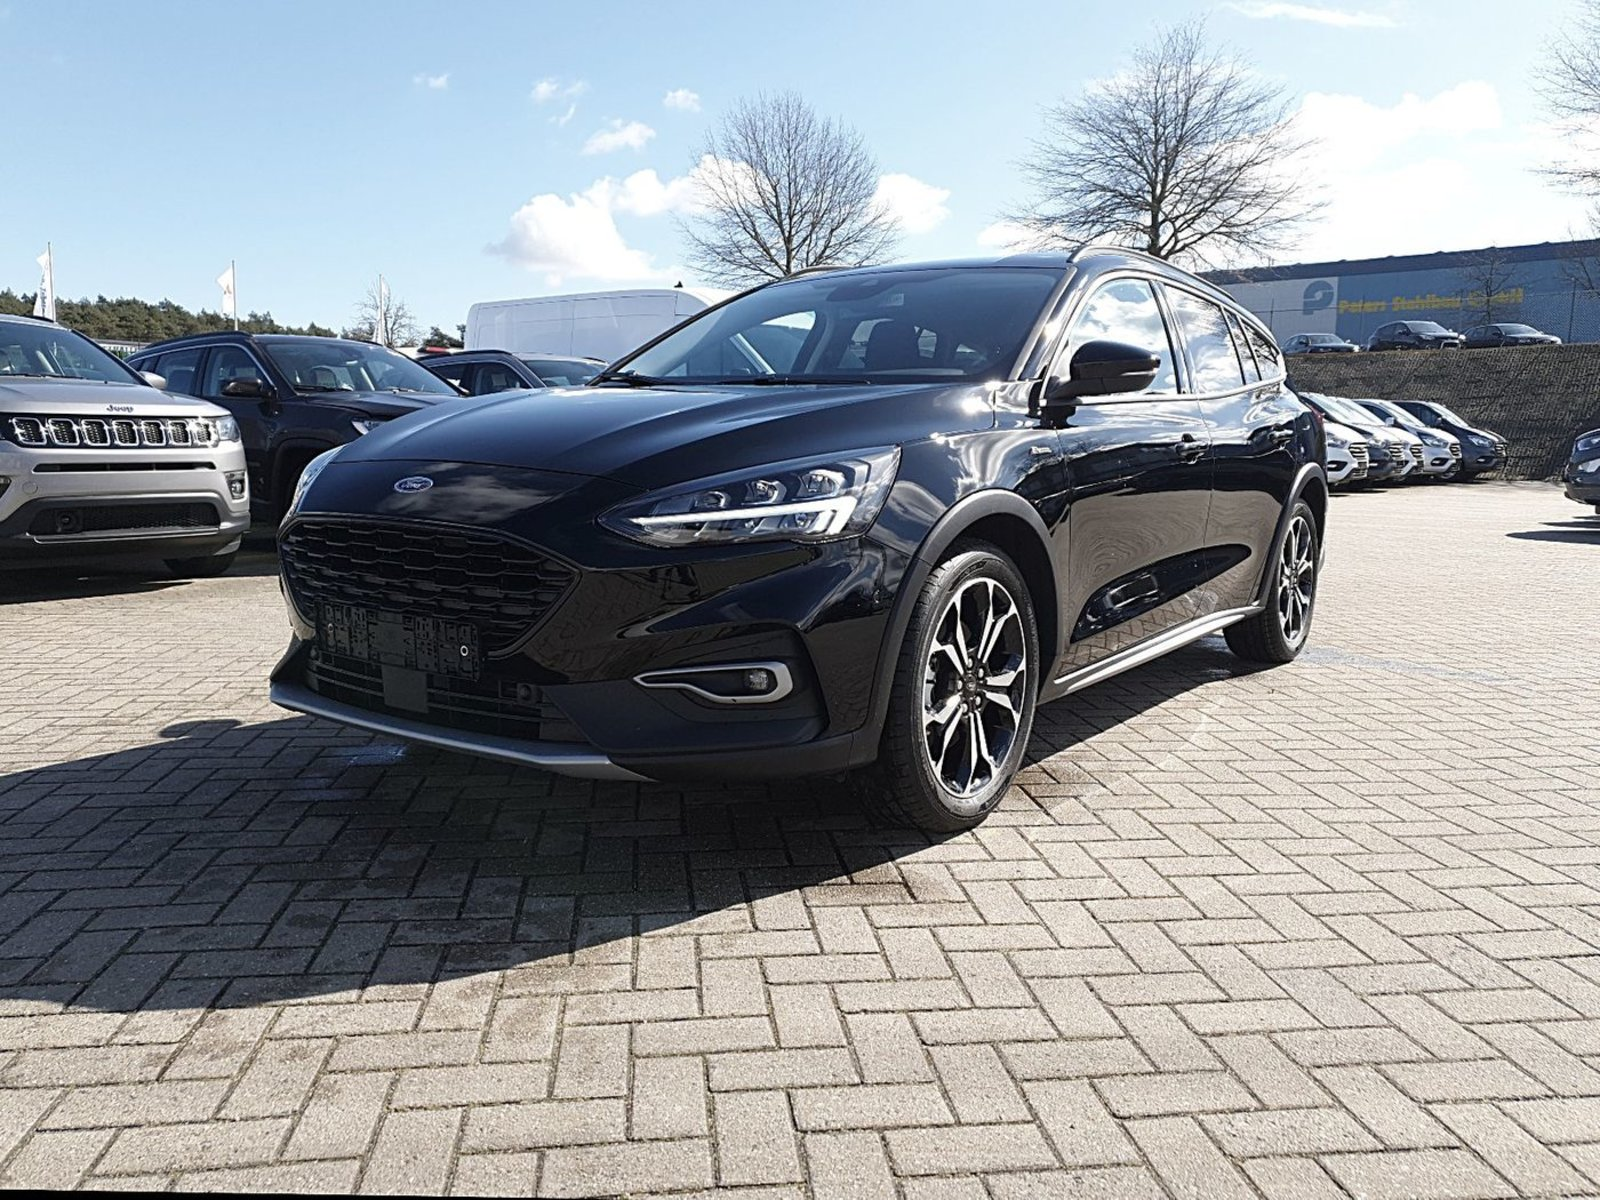 FORD FOCUS Turnier Active 1.0 EcoBoost 125PS Voll-LED Klimaautomatik 18-LM Autosoft BV, Enschede